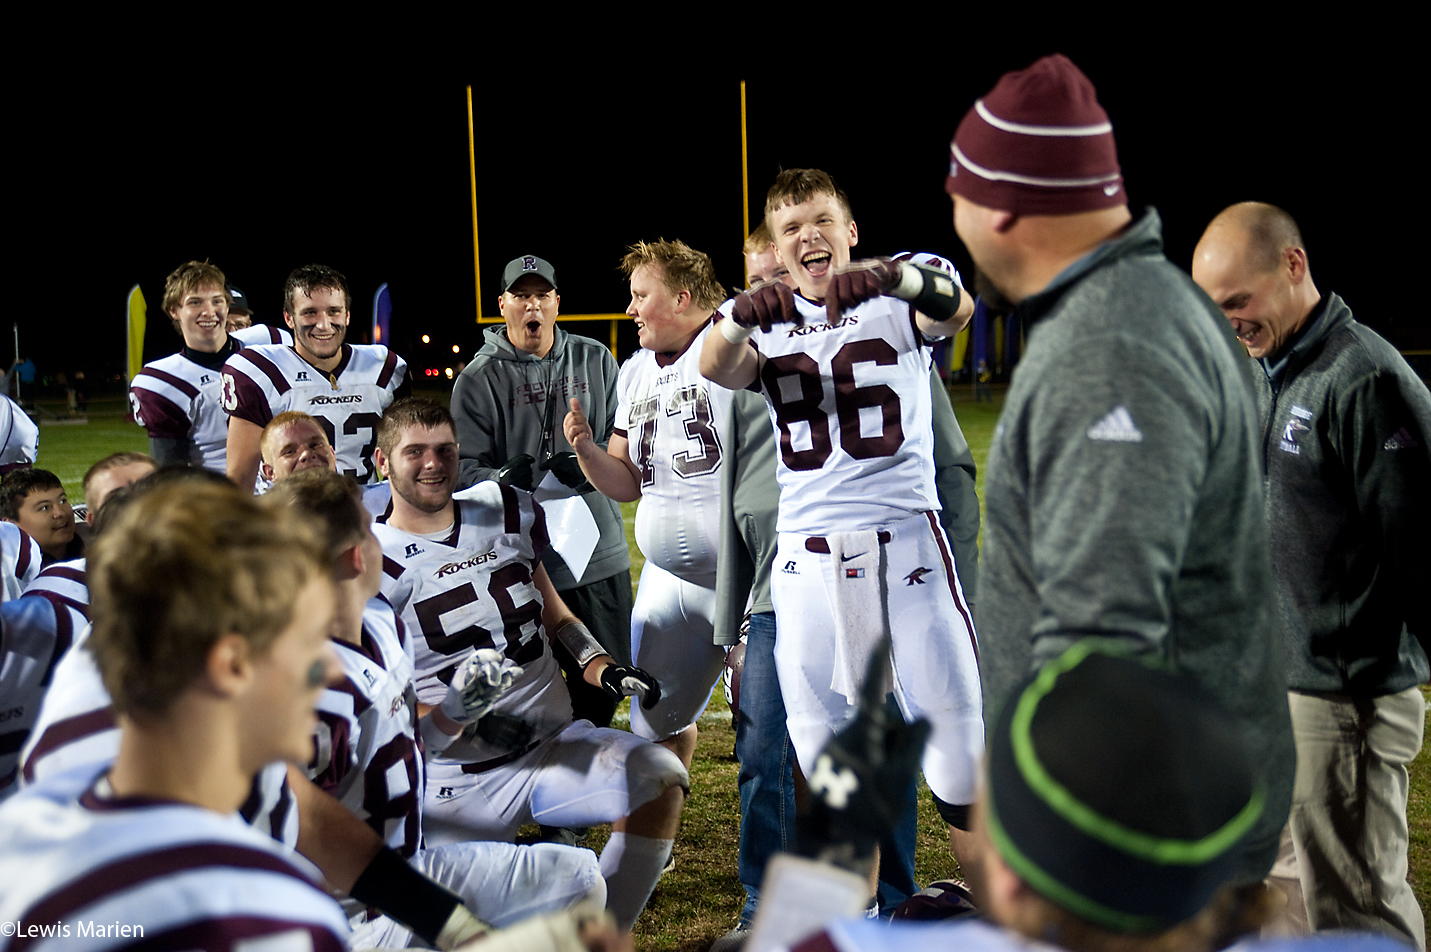 Rockridge's Drake Schroeder (86) has a little fun during his team's huddle after they beat Rushville-Industry 42-21 in the first round of the IHSA Class 2A playoffs Oct. 30 at Bob Wixom Field in Rushville, Ill.